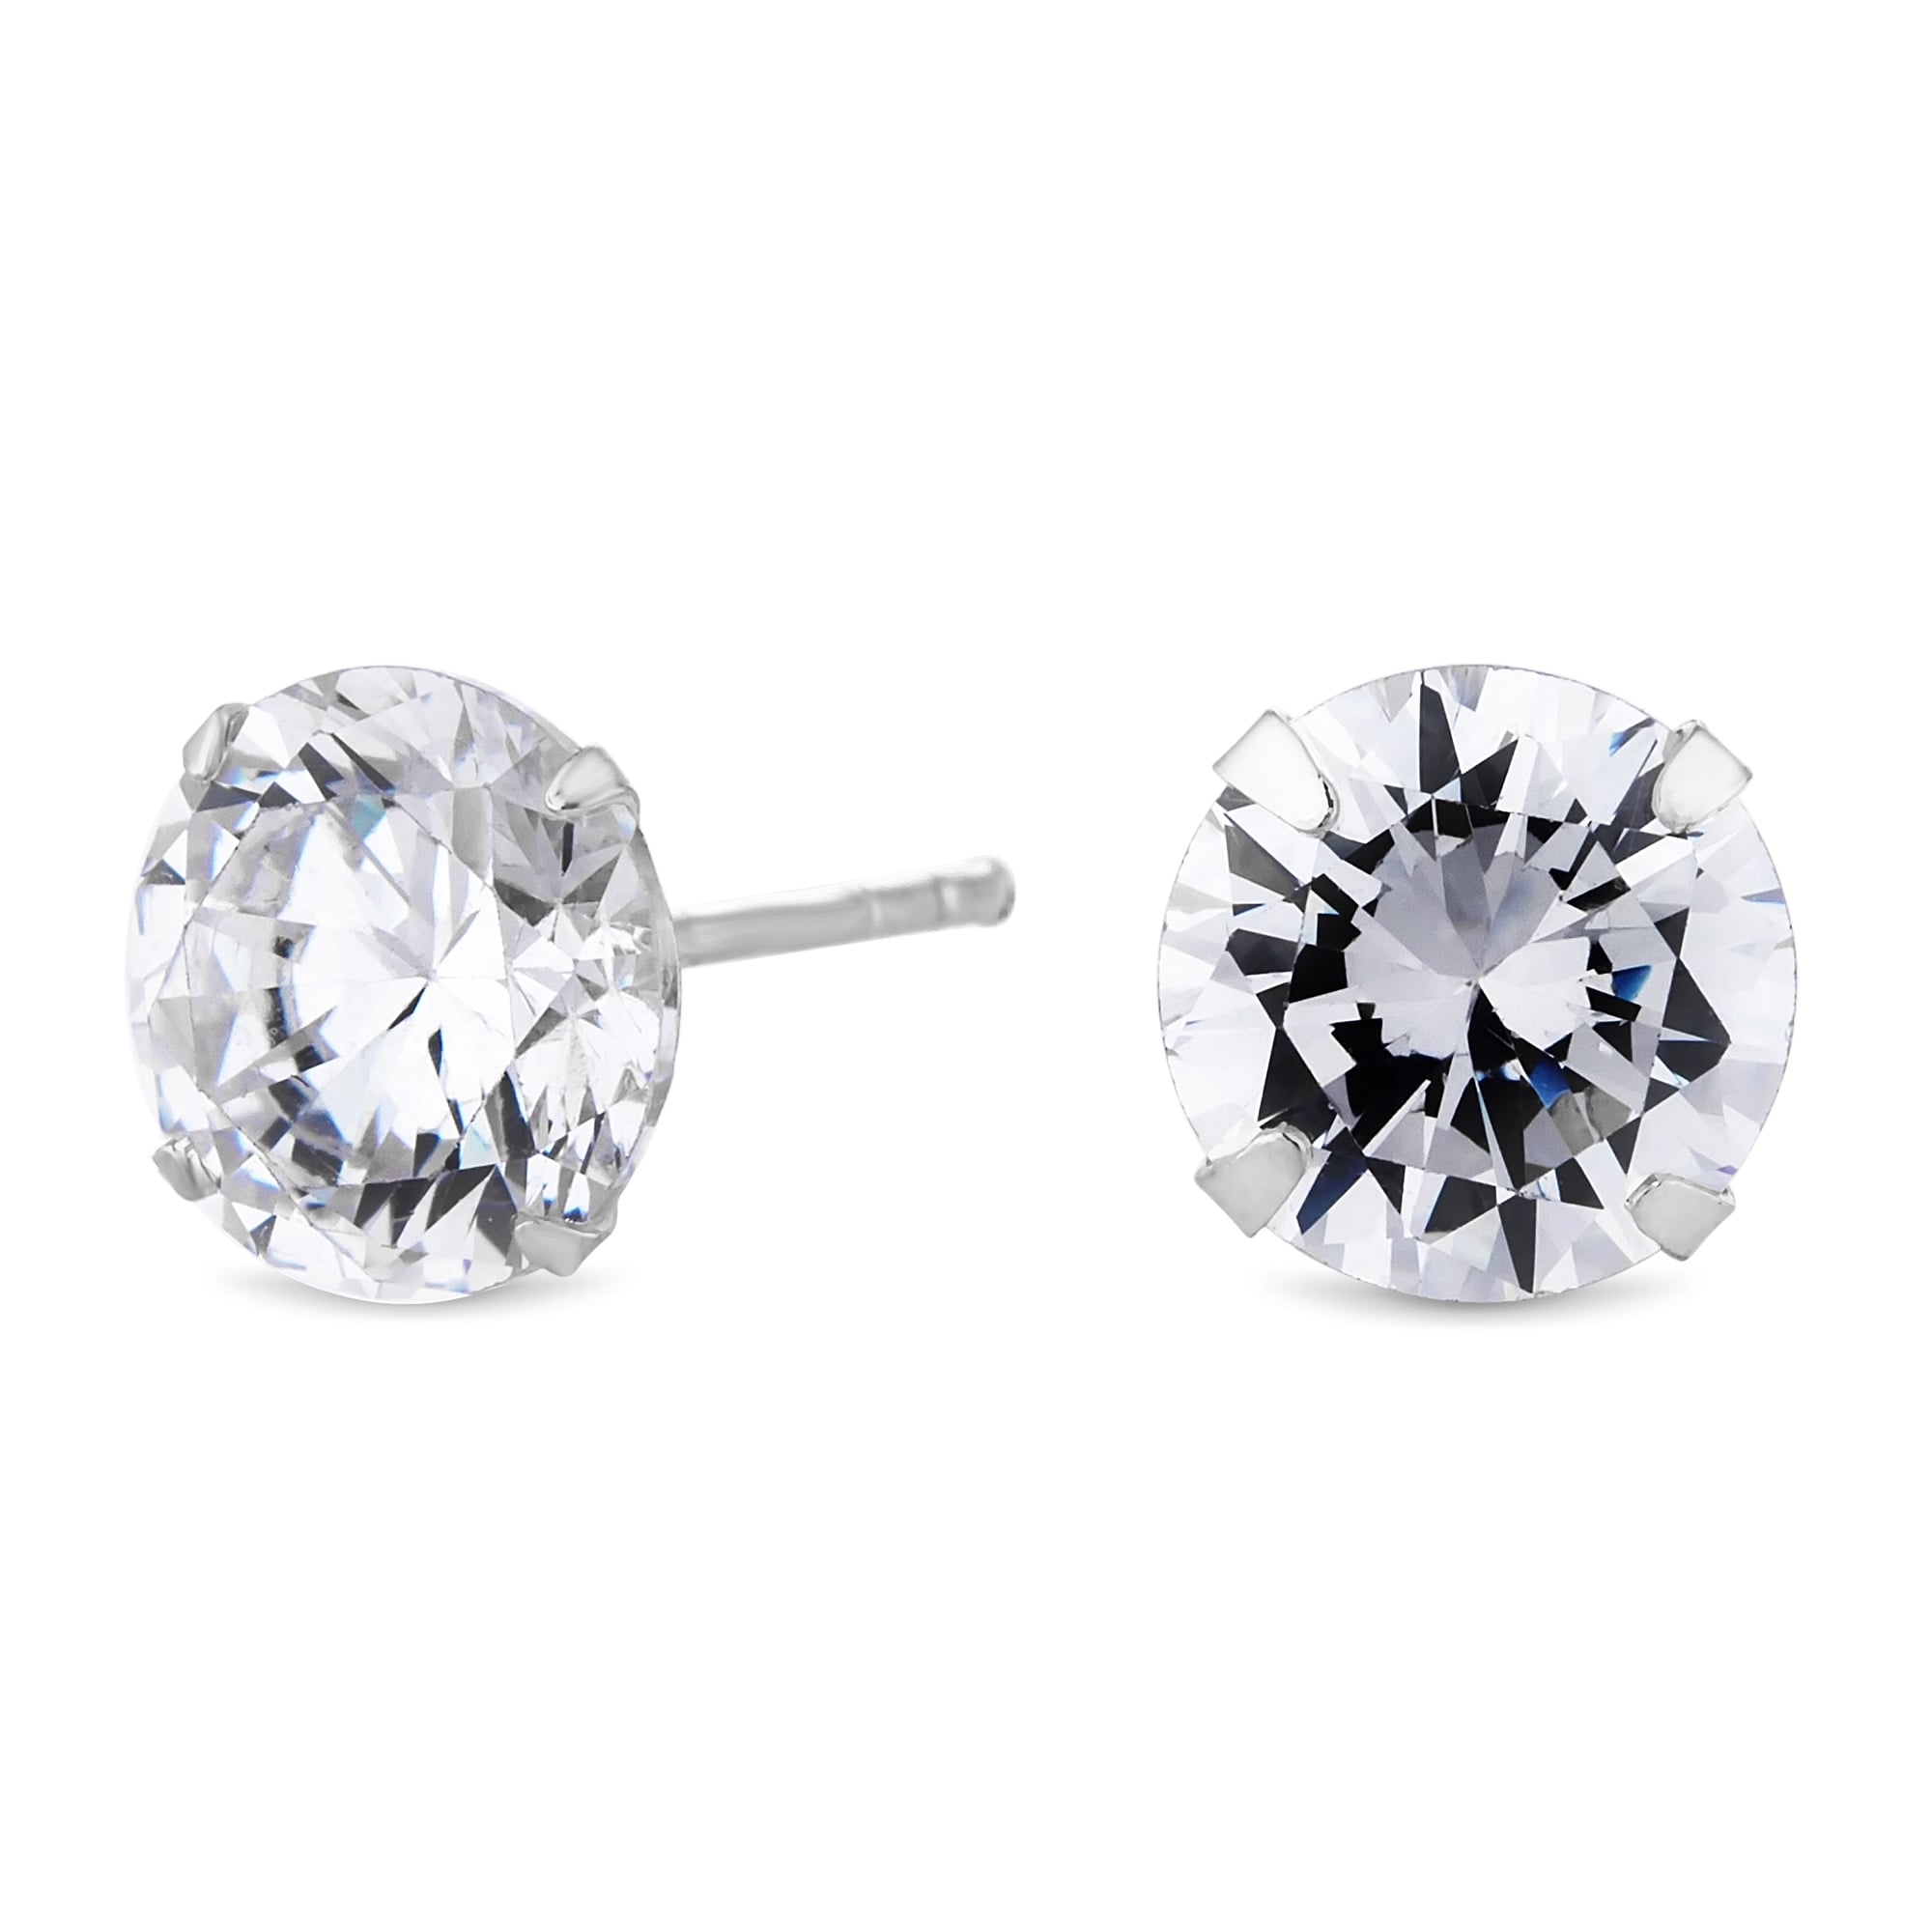 simply jewellery earrings set zirconia stud cubic earring silver sterling zoom